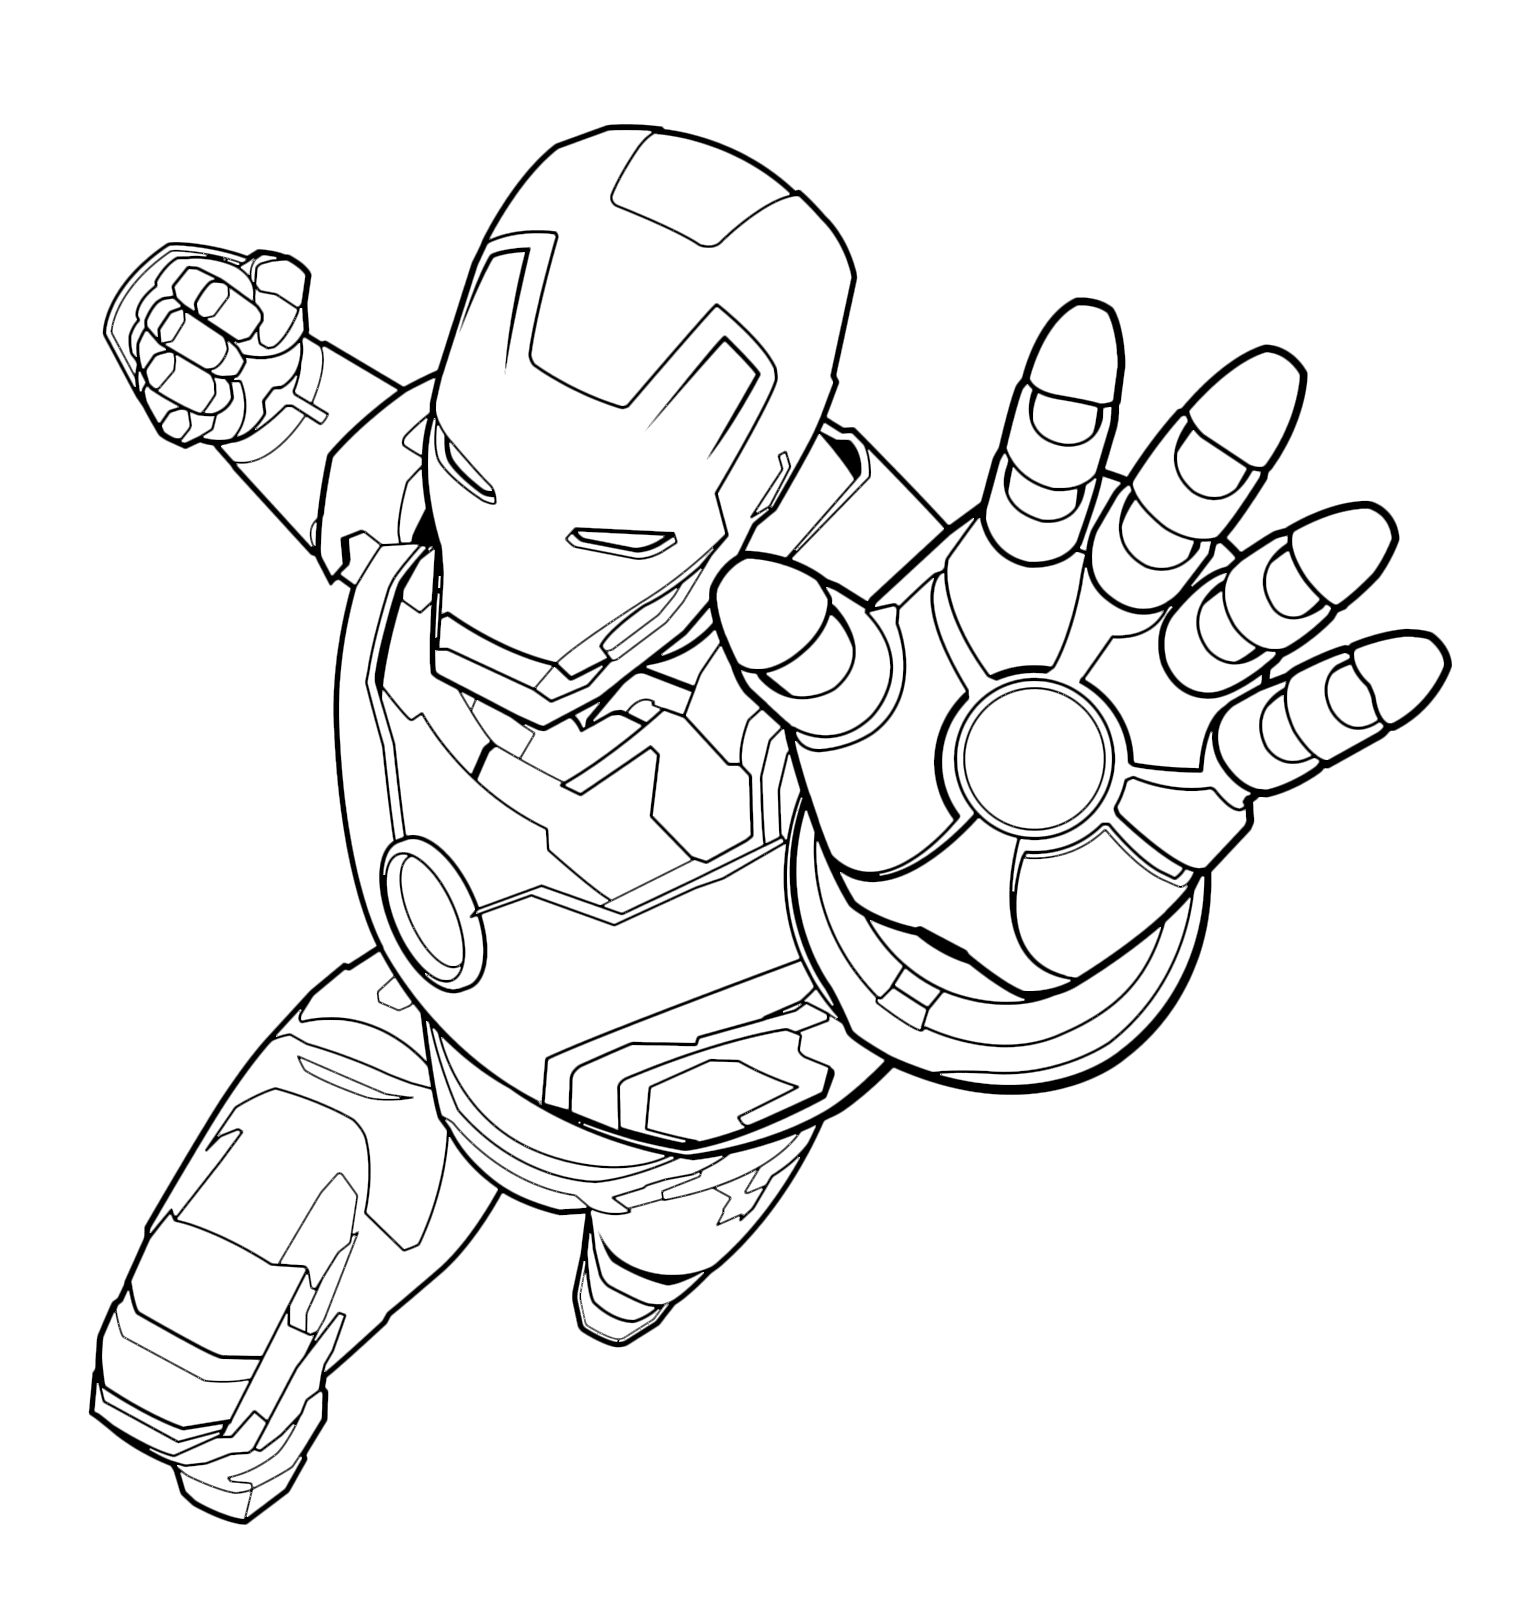 baby captain america coloring pages - photo#14